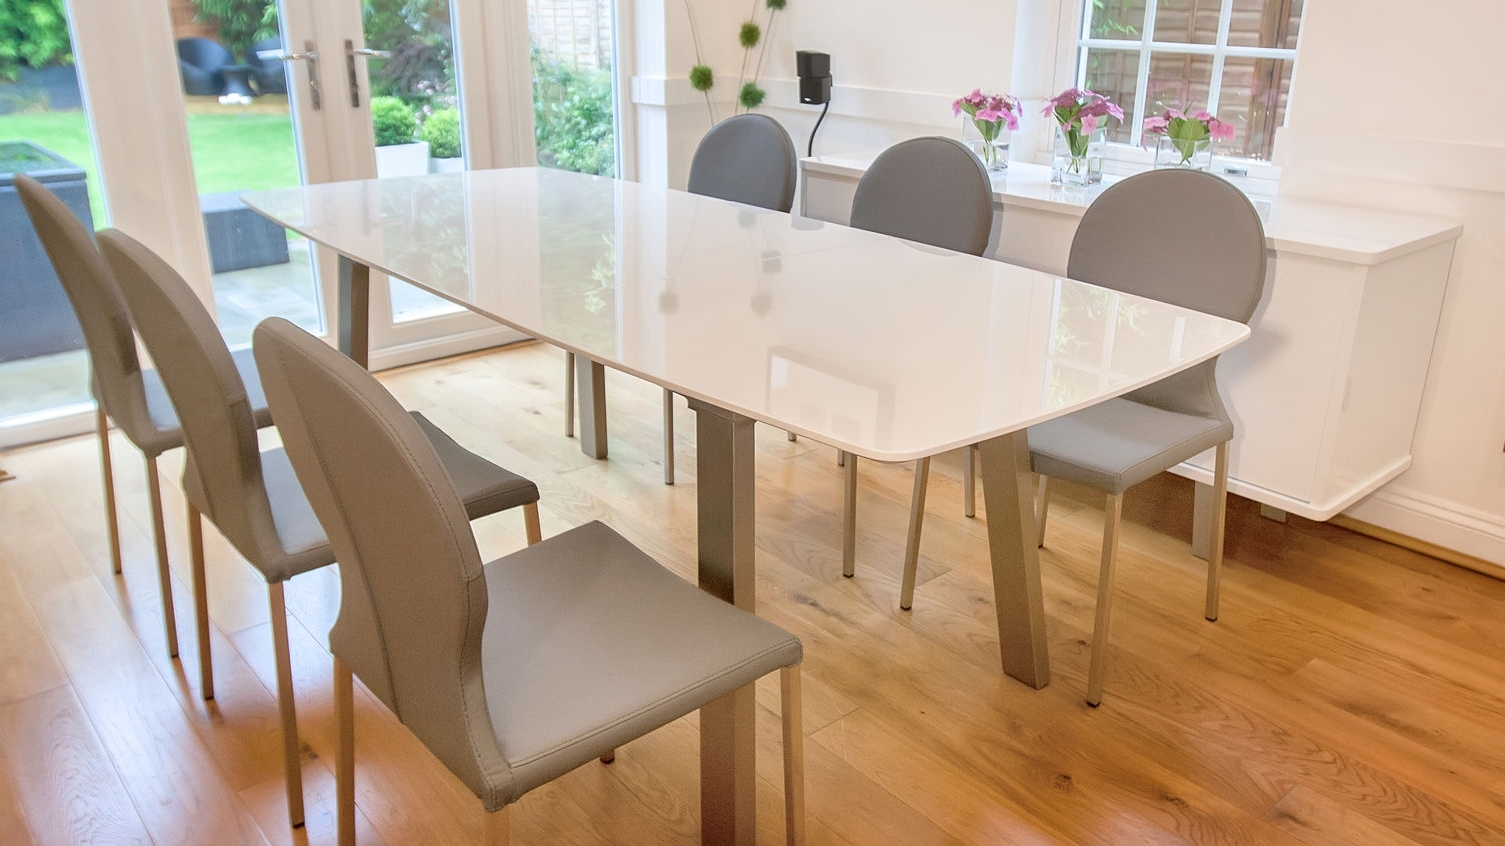 Newest Extending Dining Room Tables And Chairs Dining Room Chair Slipcovers Intended For White Extending Dining Tables And Chairs (Gallery 21 of 25)